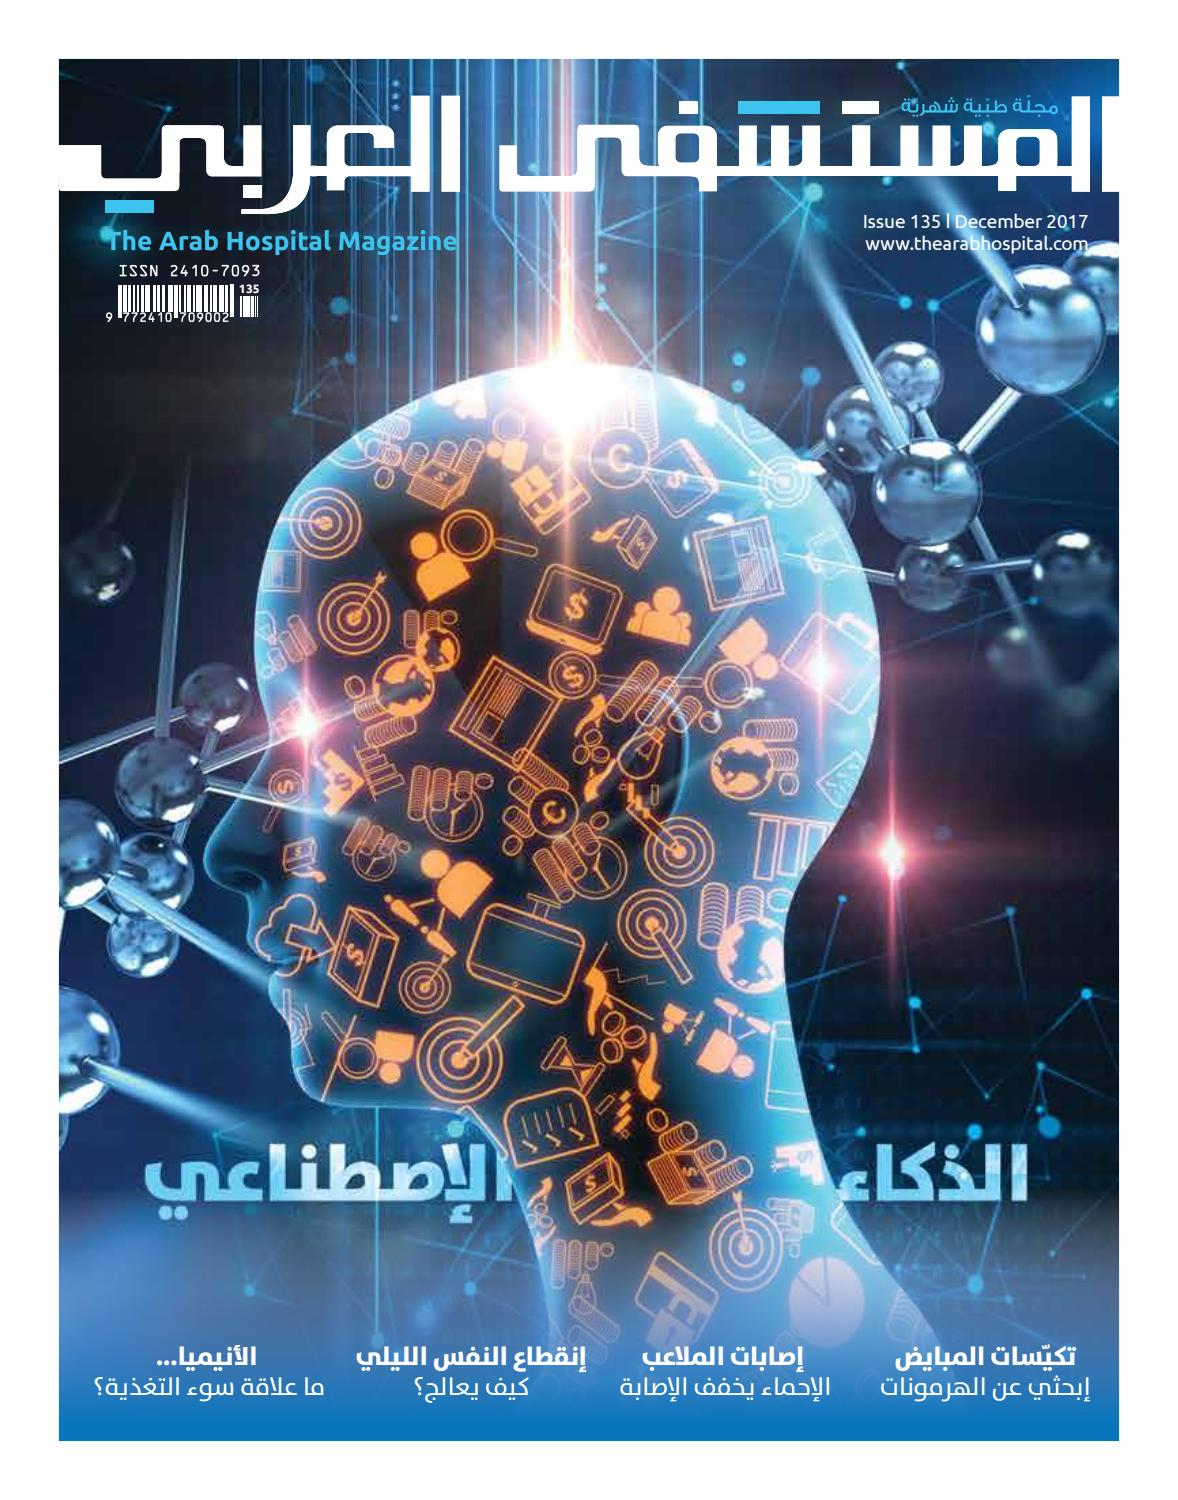 9dac9292a The Arab Hospital Magazine issue 135 by The Arab Hospital Magazine - issuu